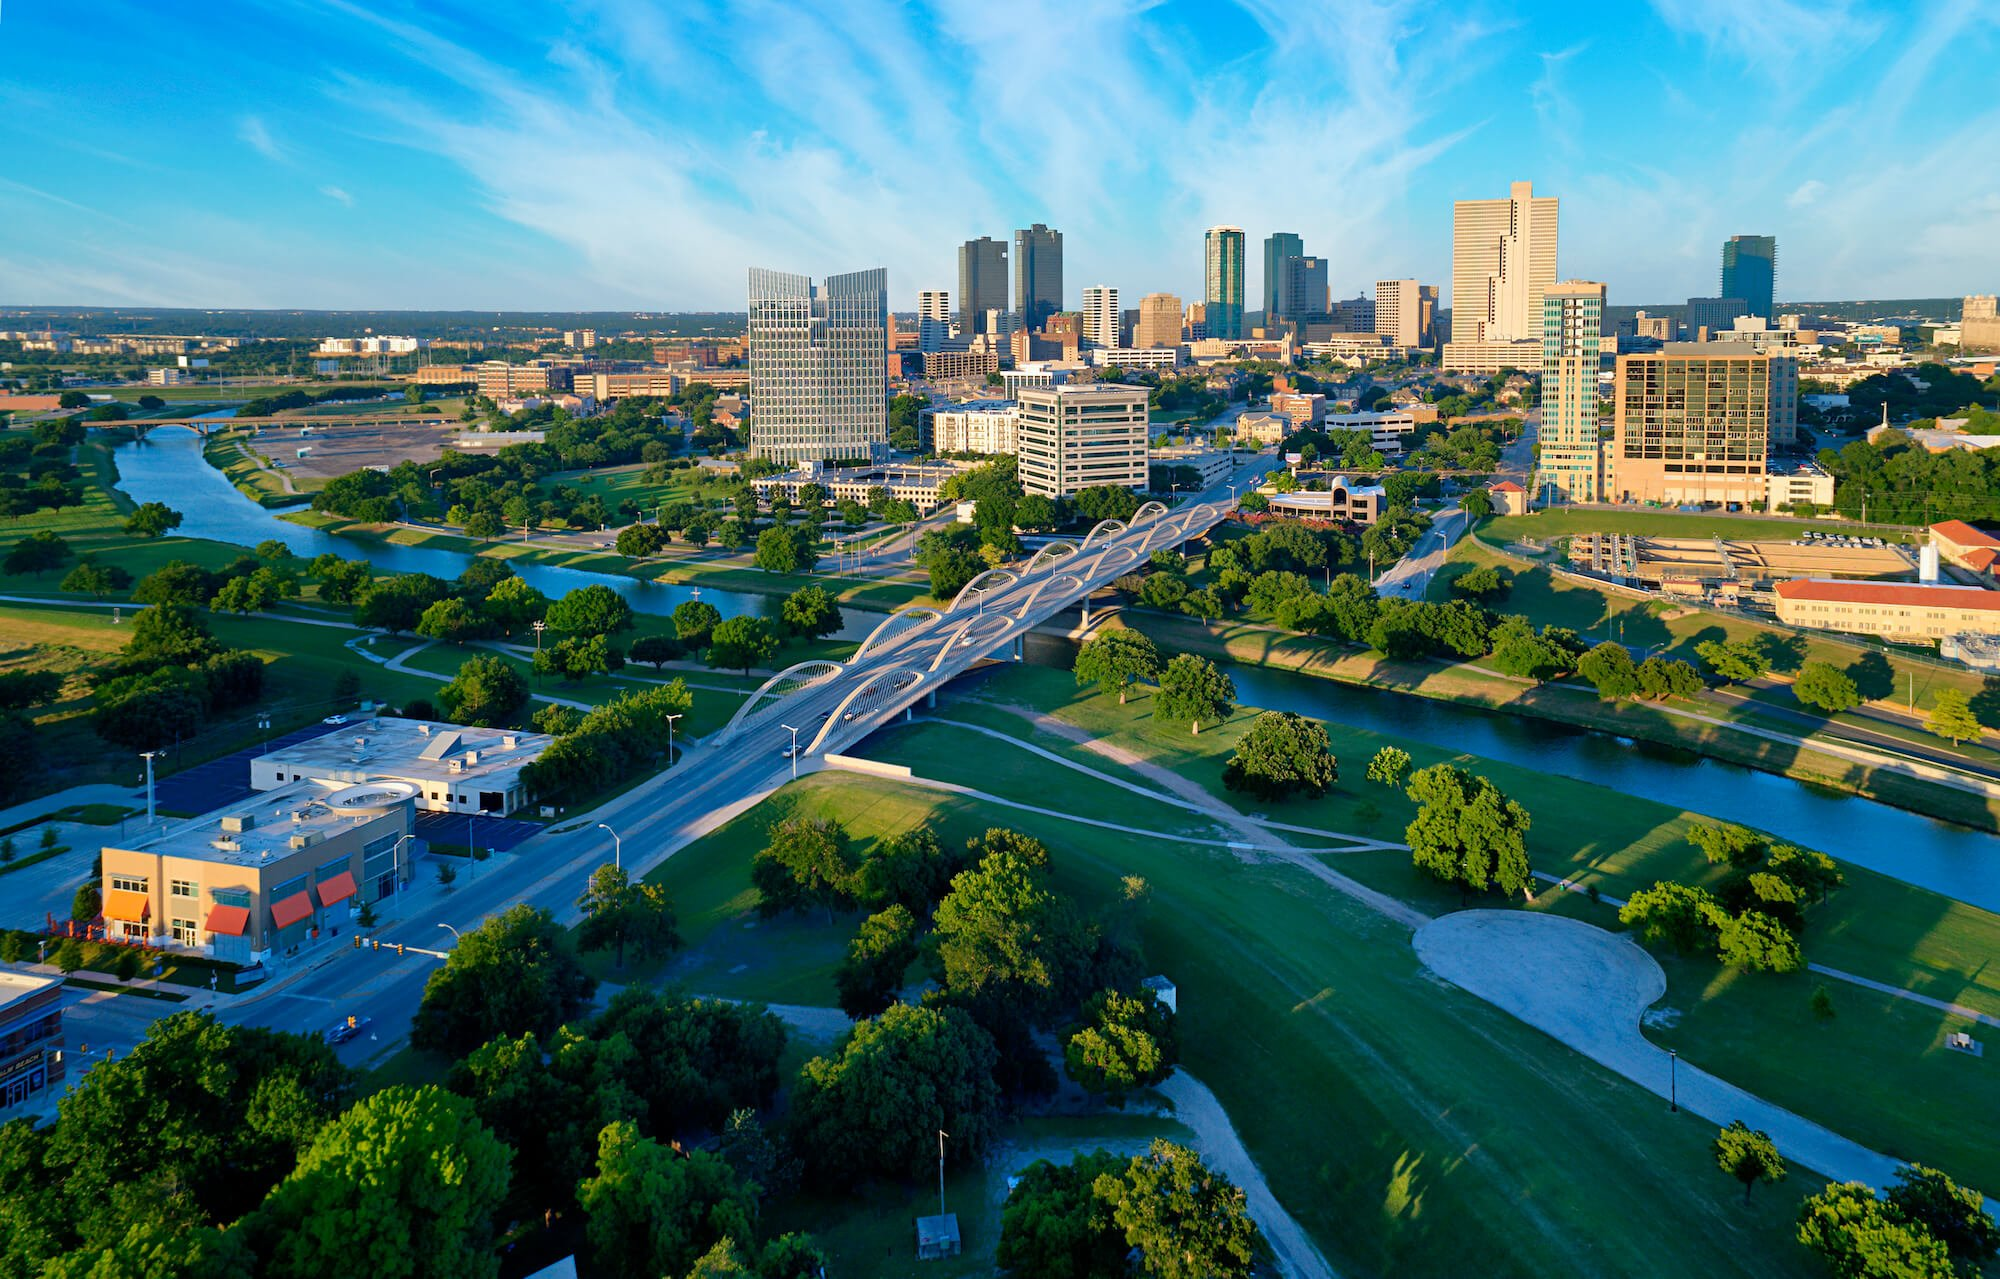 HappyNest Grows in Texas, Now Available in Fort Worth